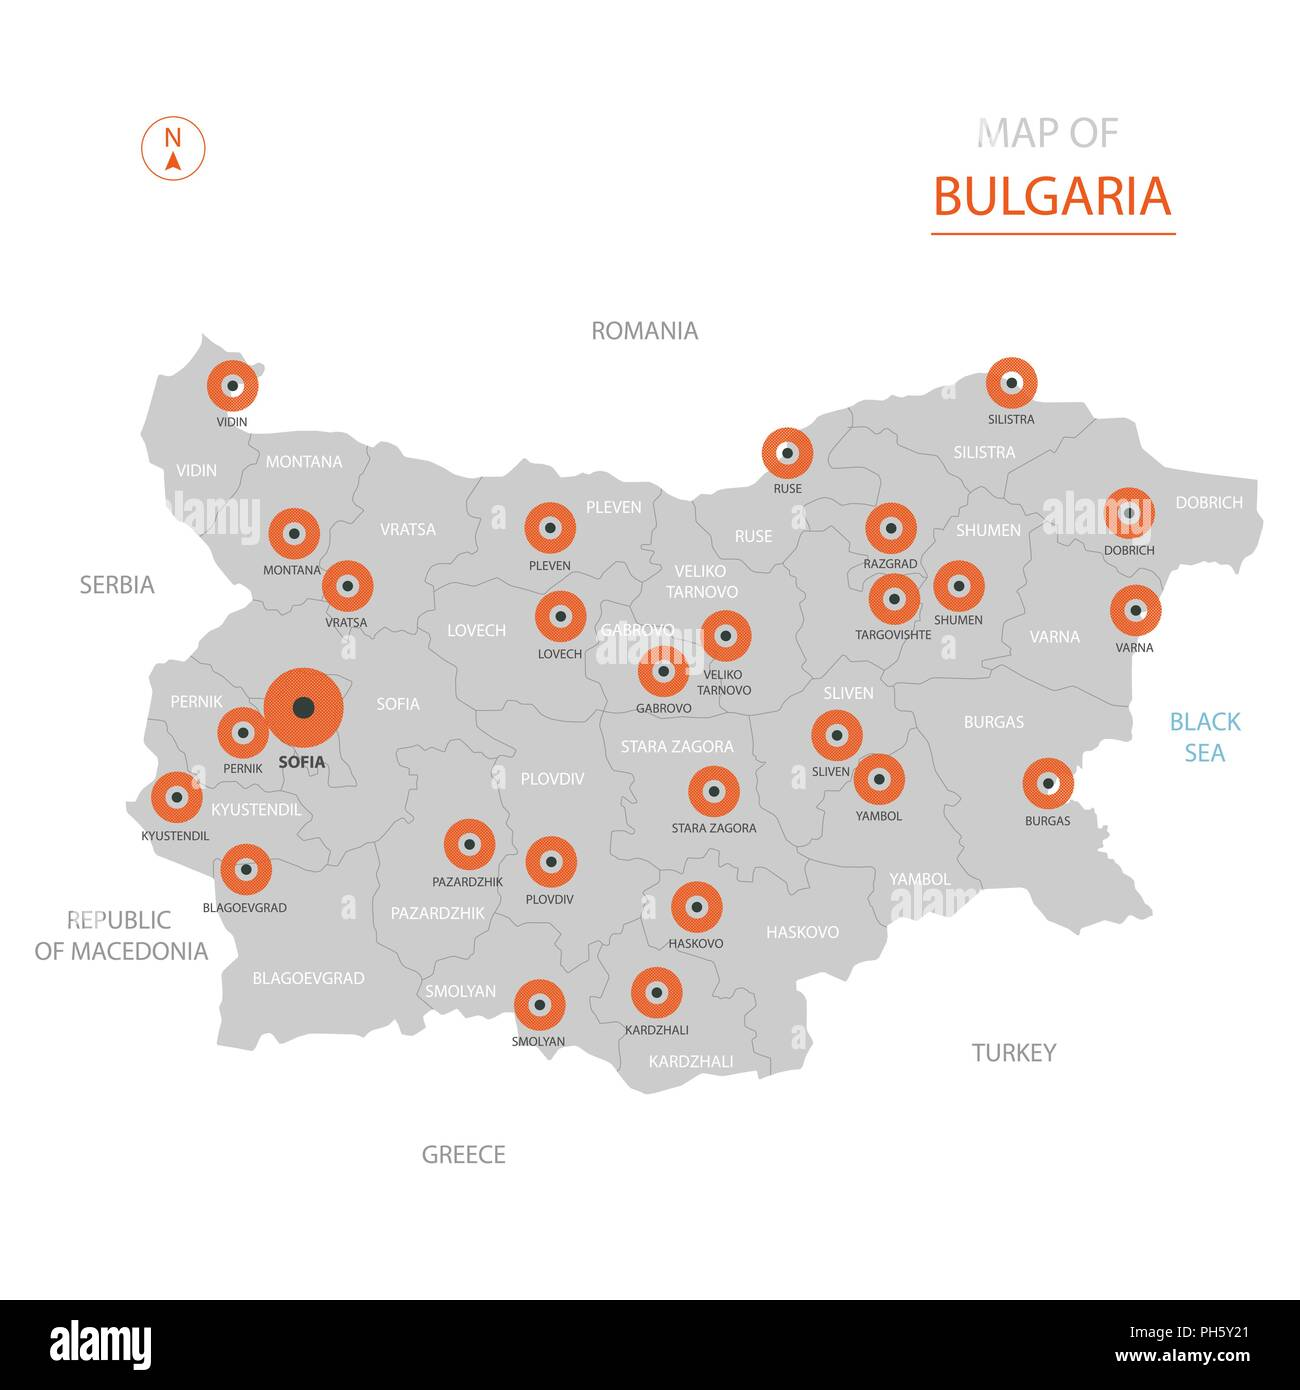 Stylized vector Bulgaria map showing big cities, capital Sofia, administrative divisions. Stock Vector